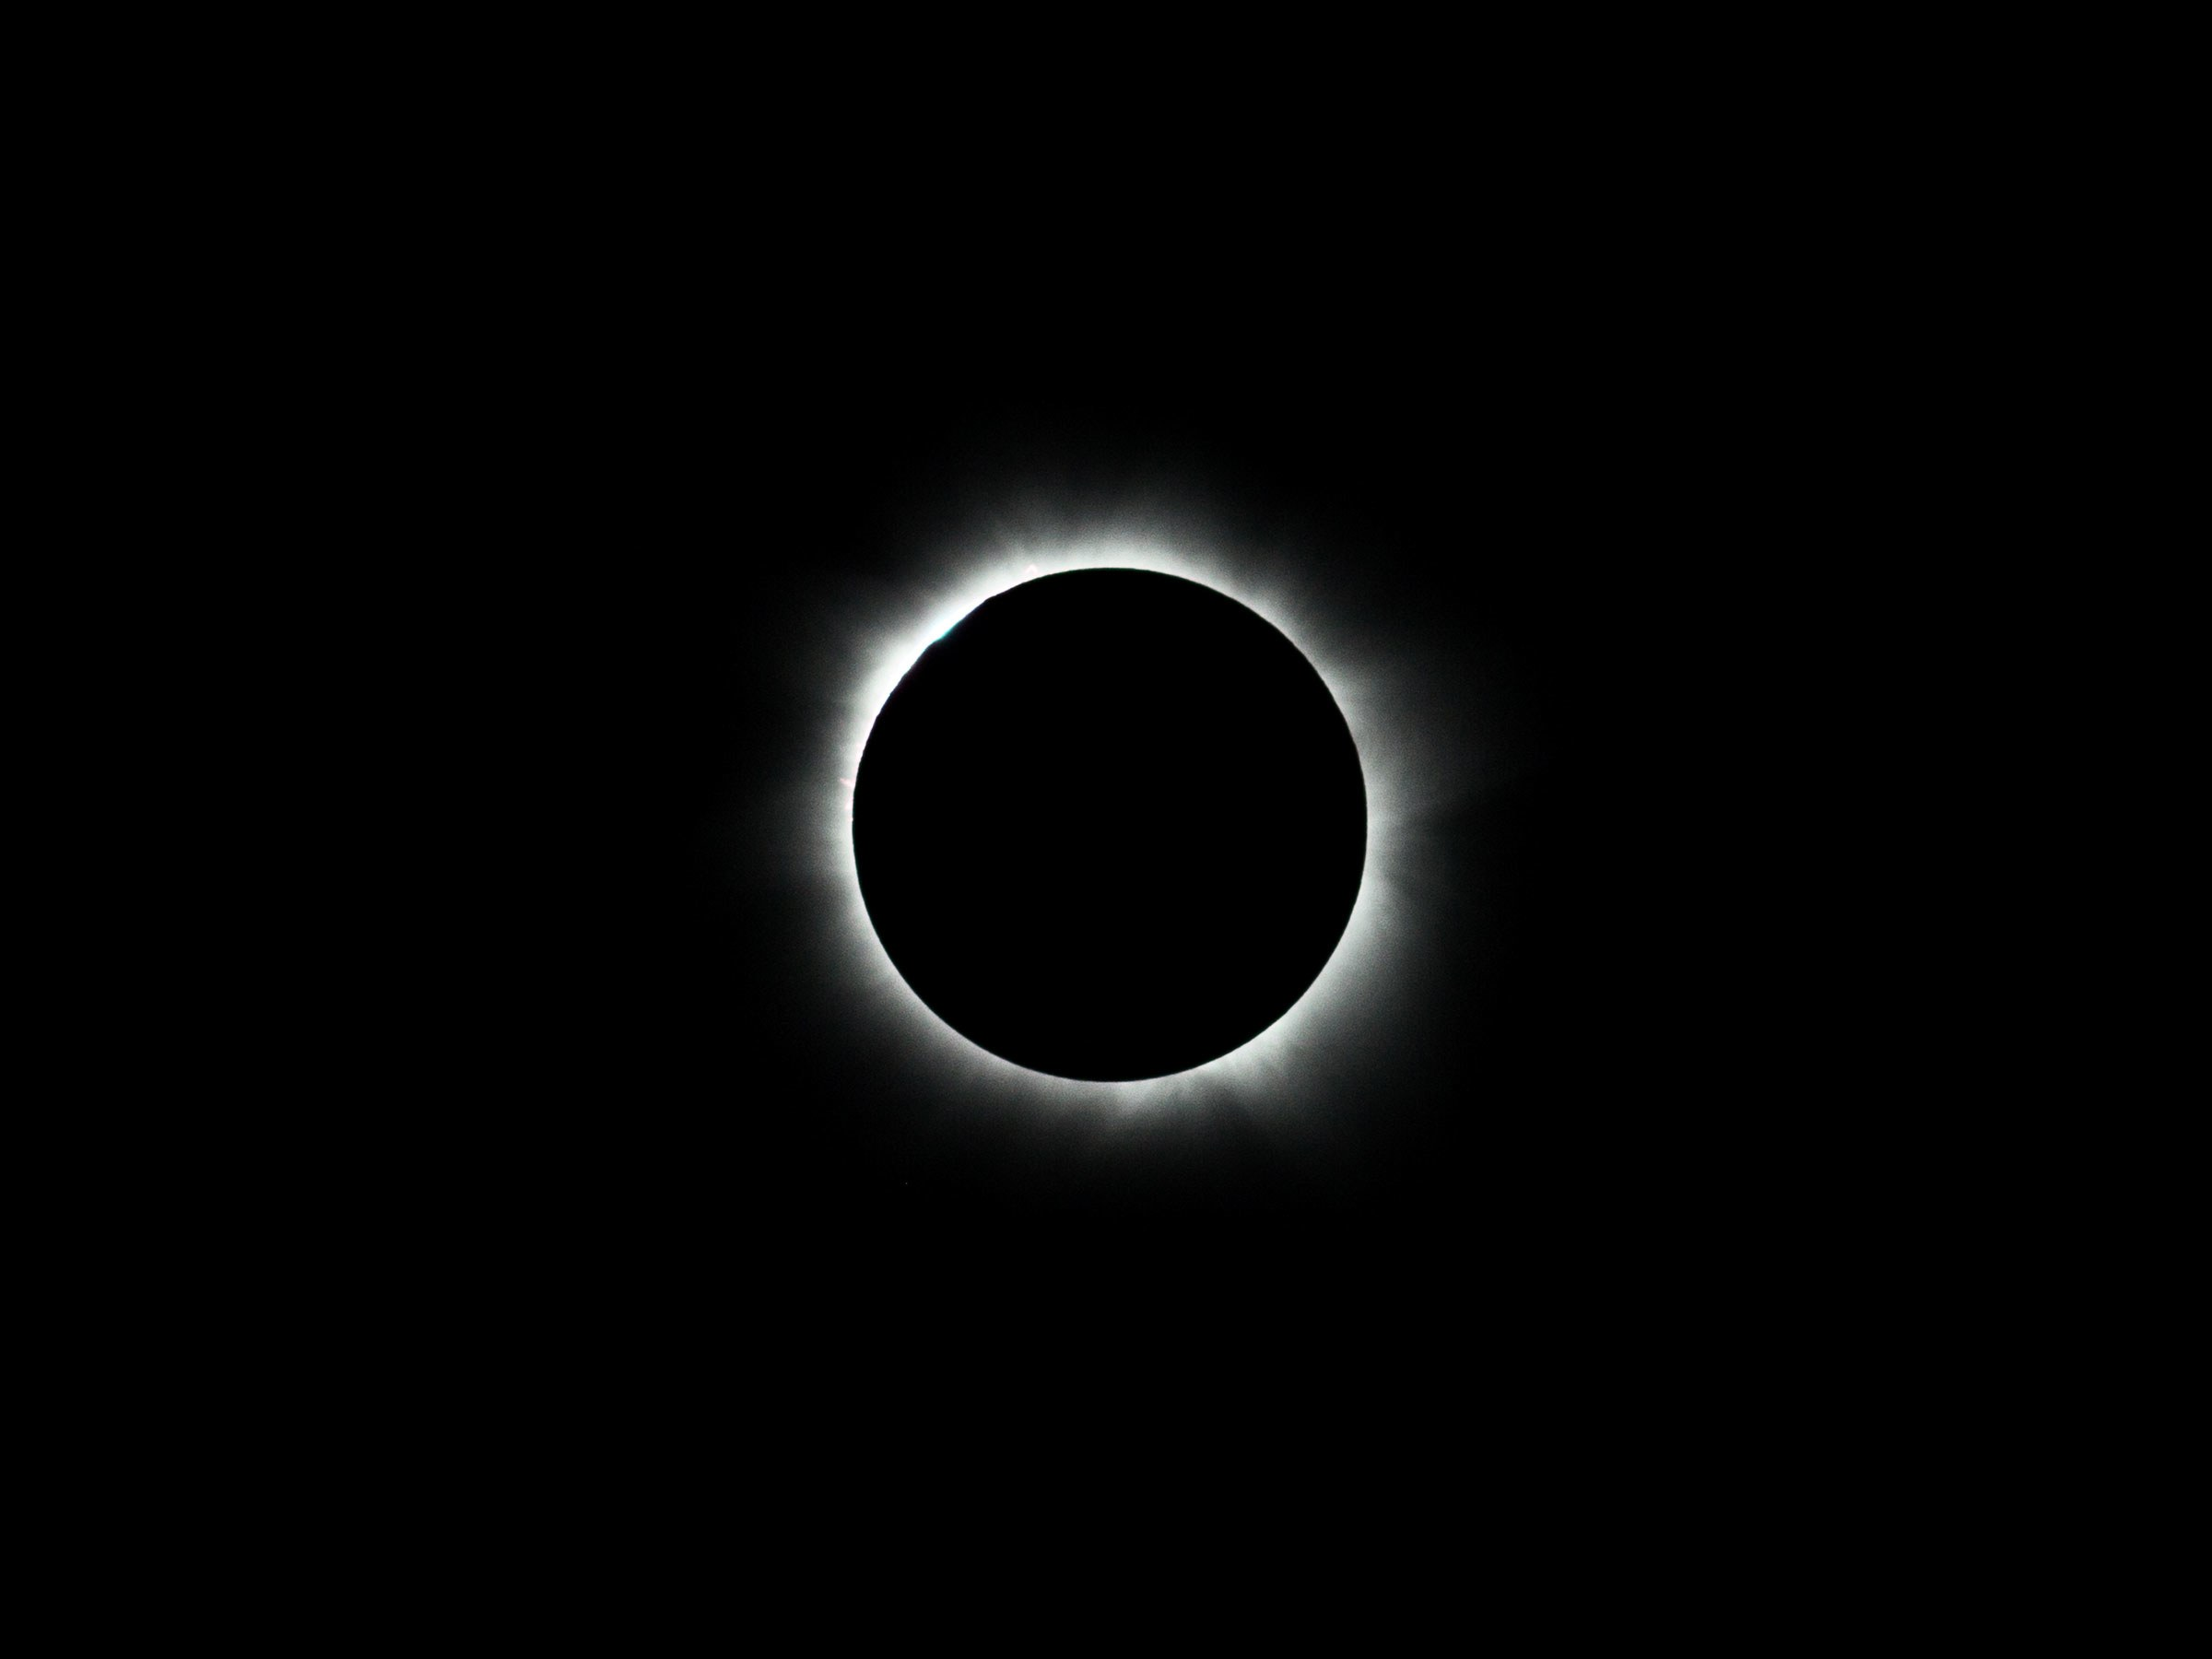 Eclipse Pictures